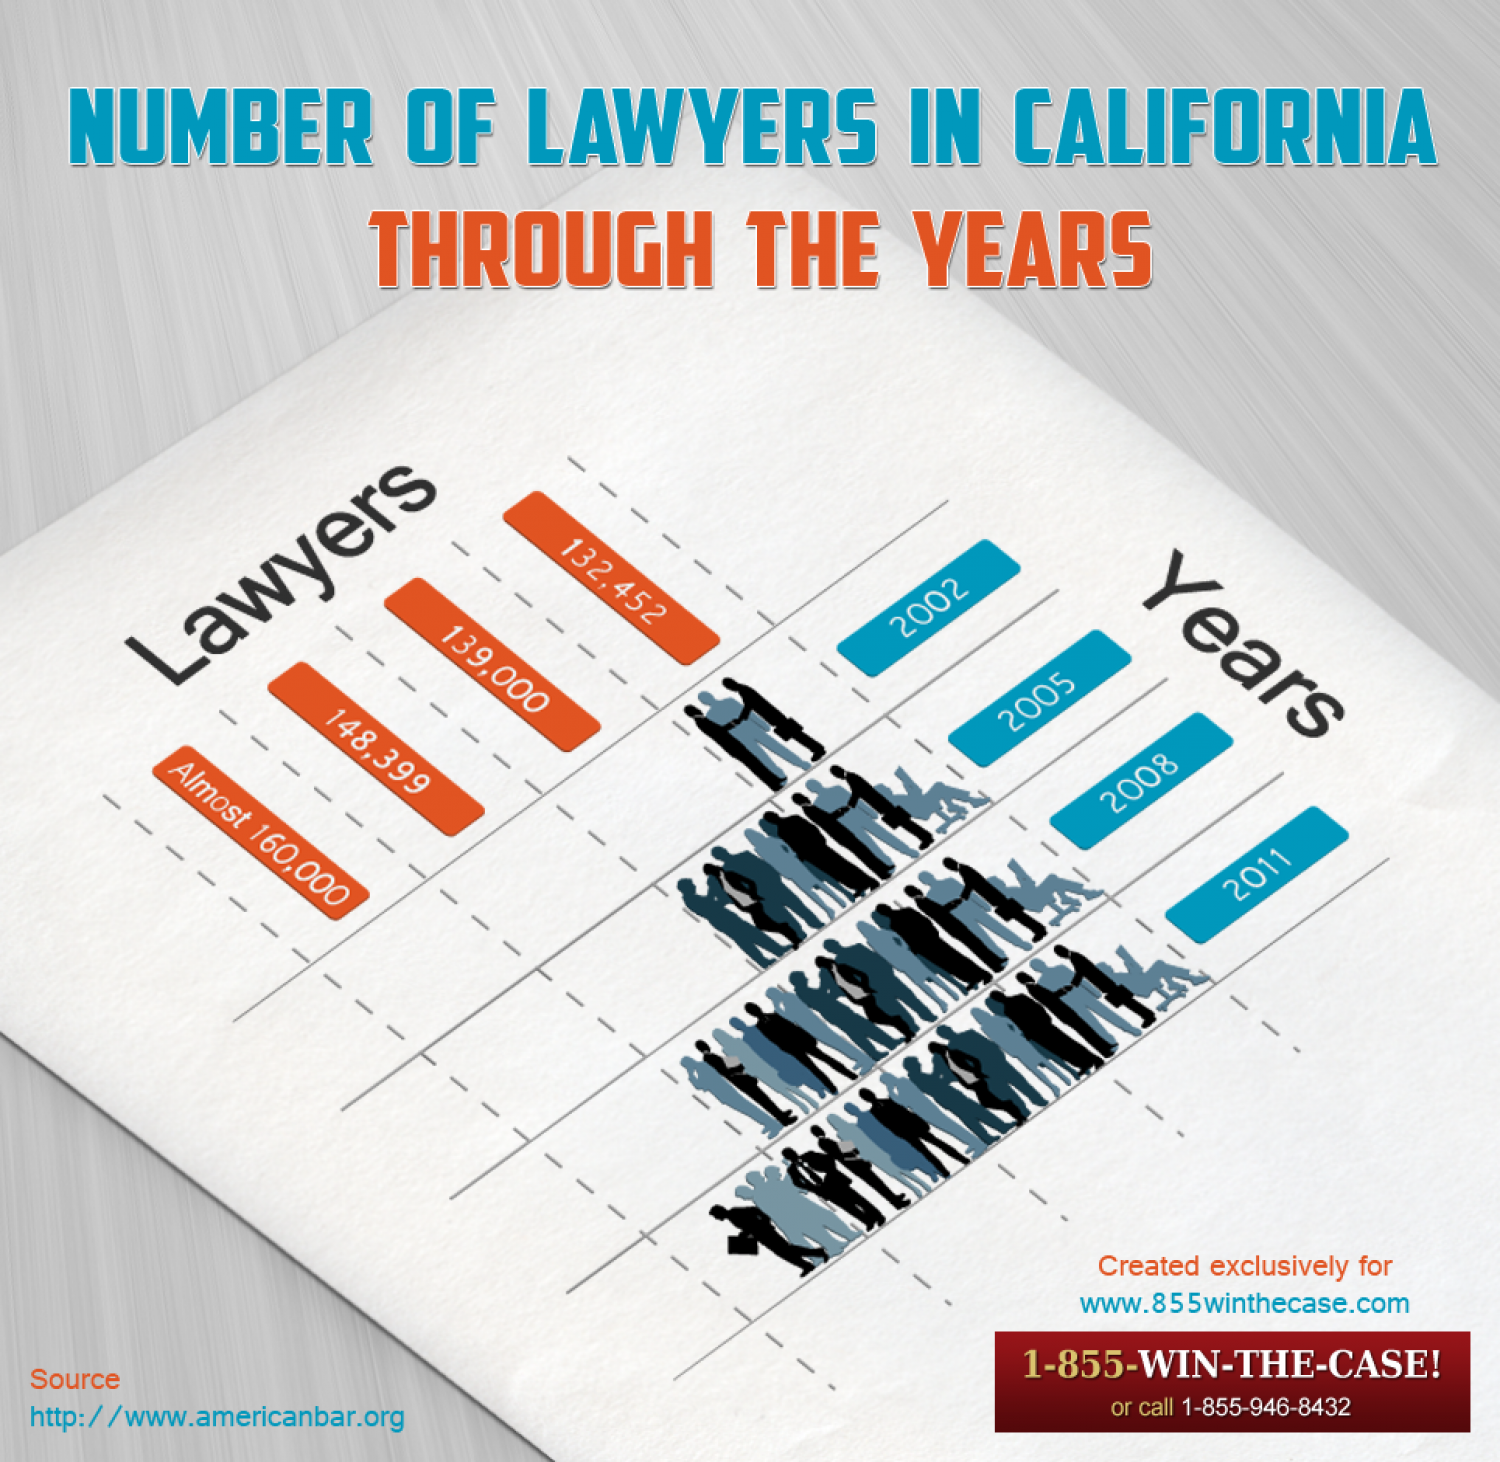 Number of Lawyers in California Infographic